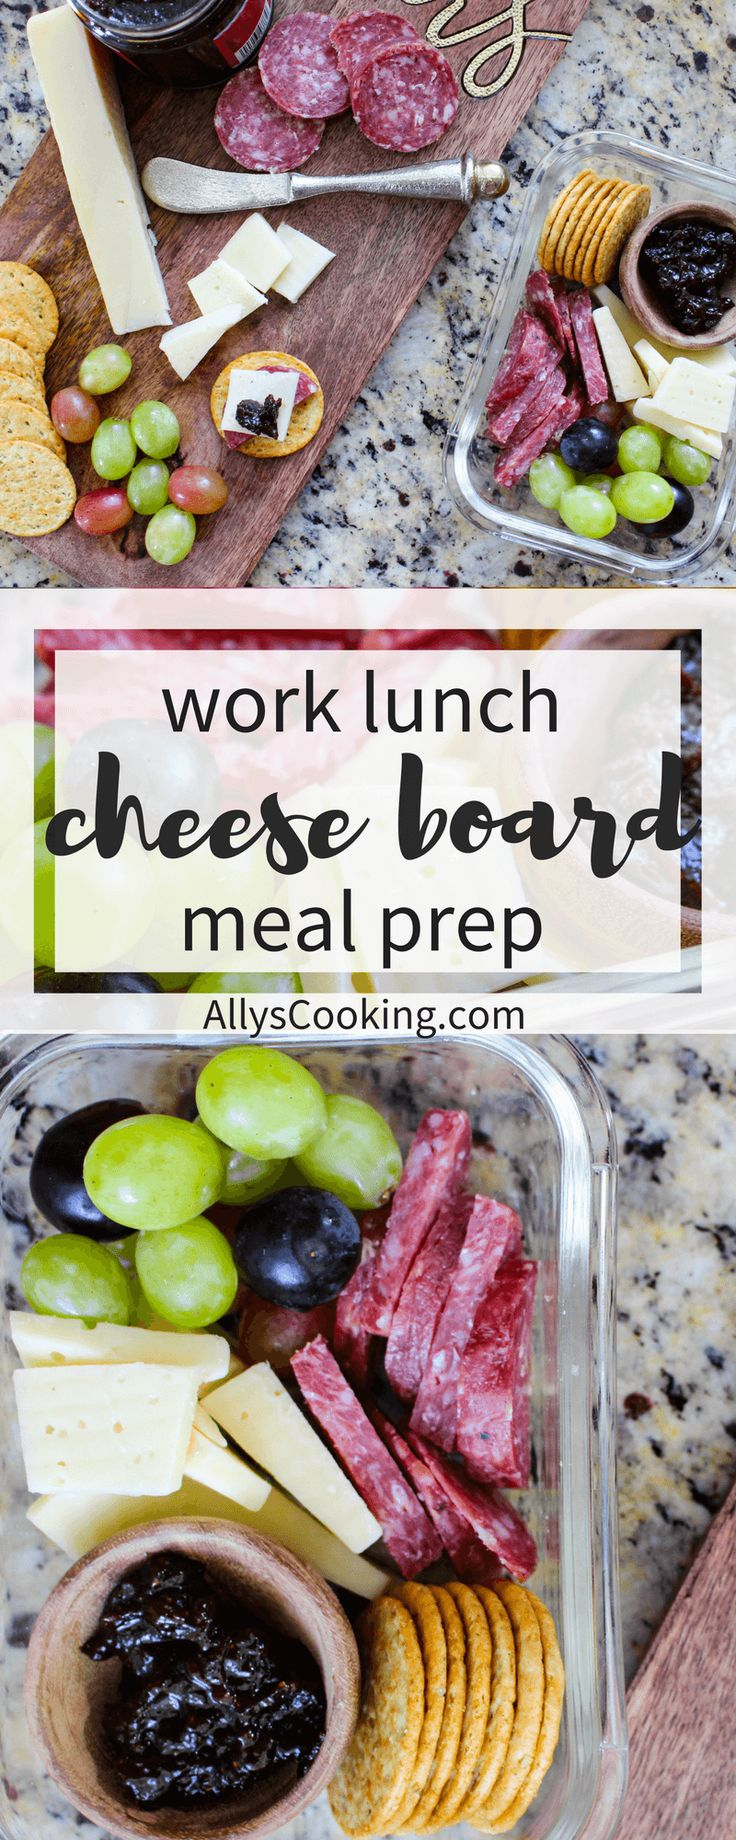 Meal prep this guilty-pleasure cheese board for work lunches and spoil yourself for under 500 calories! via @allyscooking